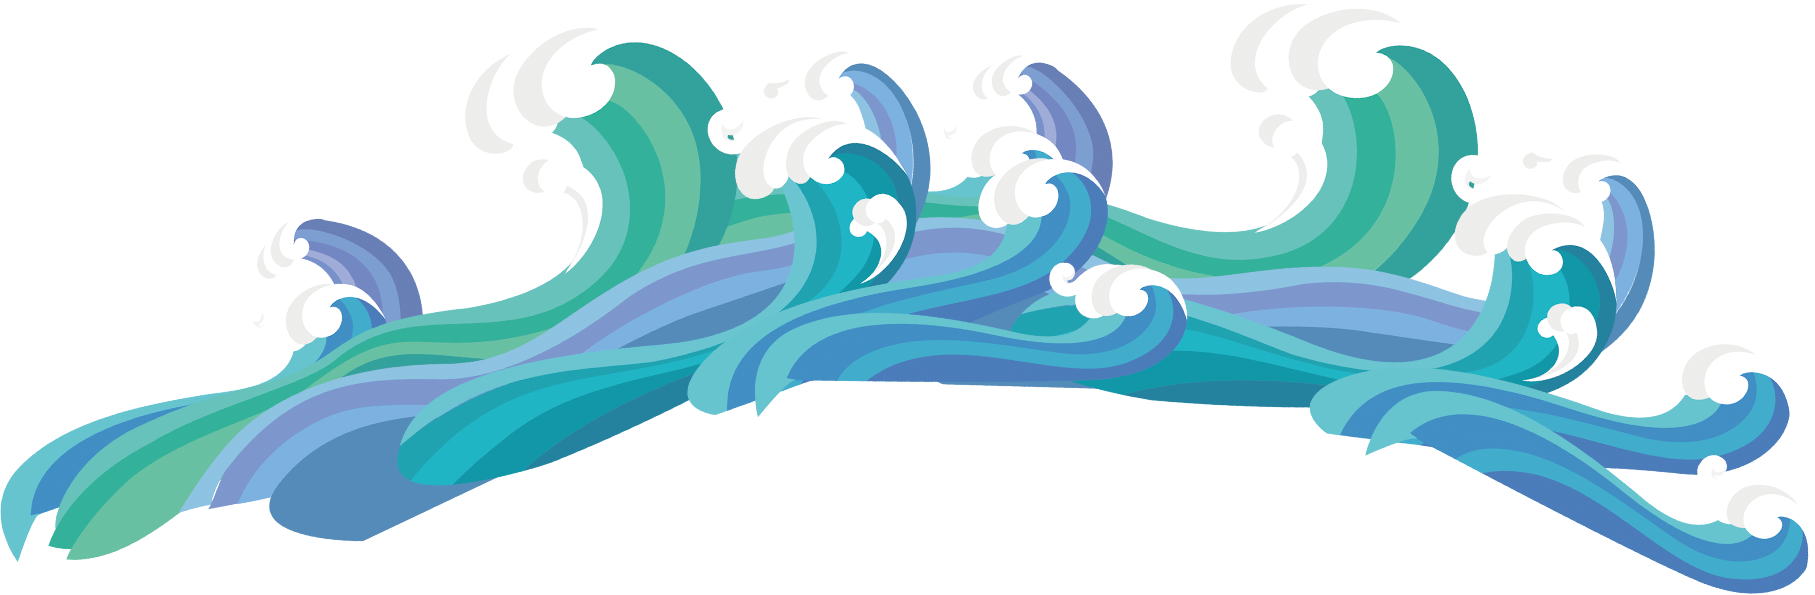 clipart wave wave drawing